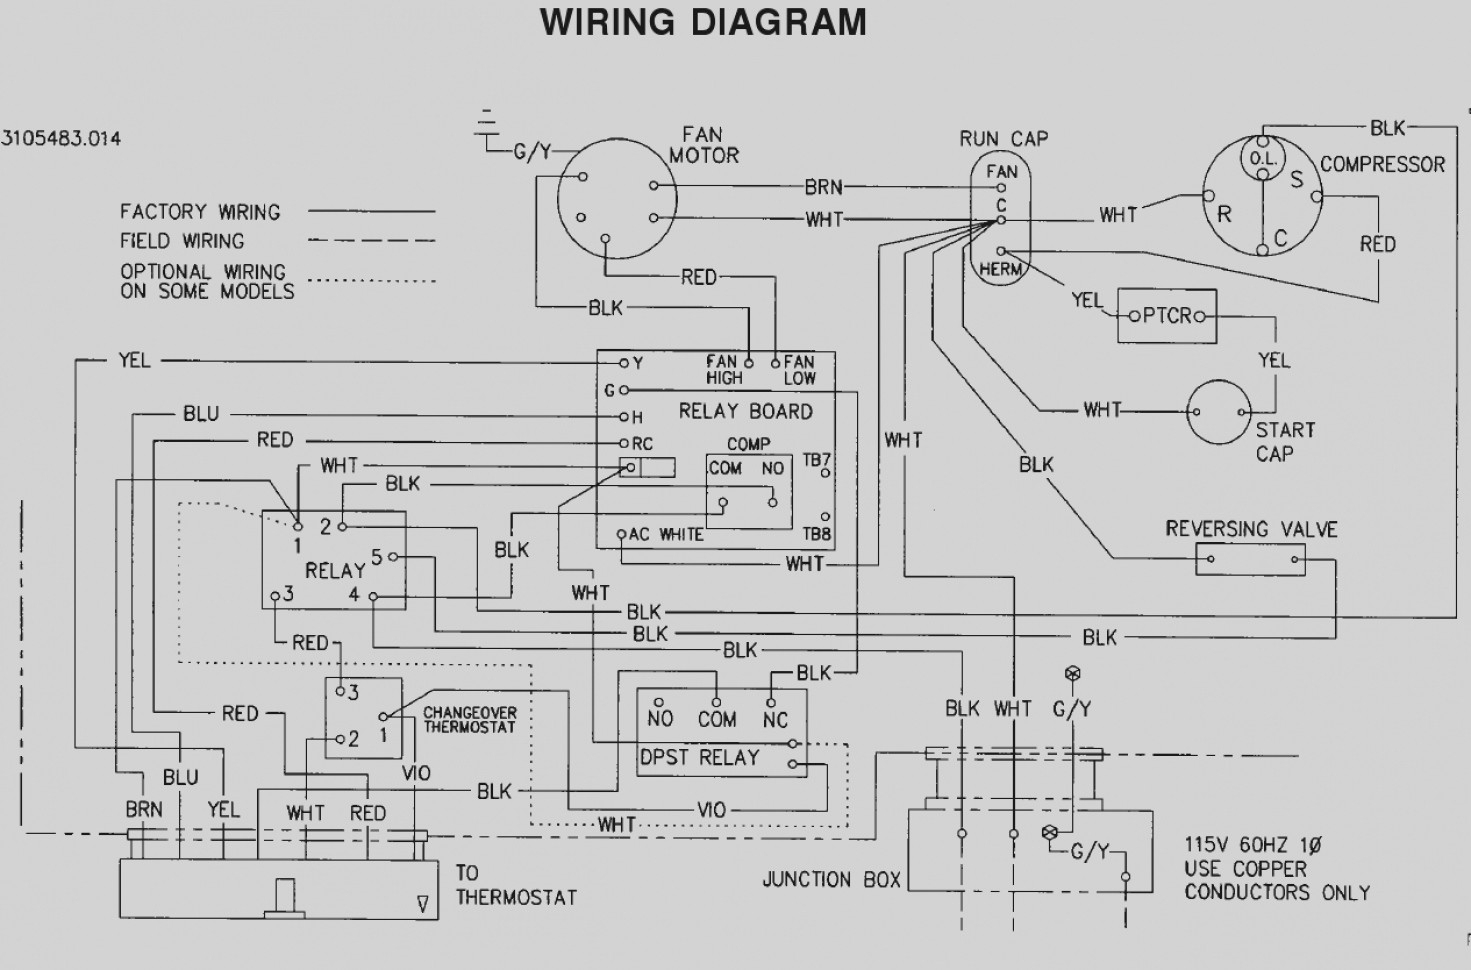 Dometic Ducted Ac Wiring Diagrams White Diagram Subcon Panasonic A C Thermostat